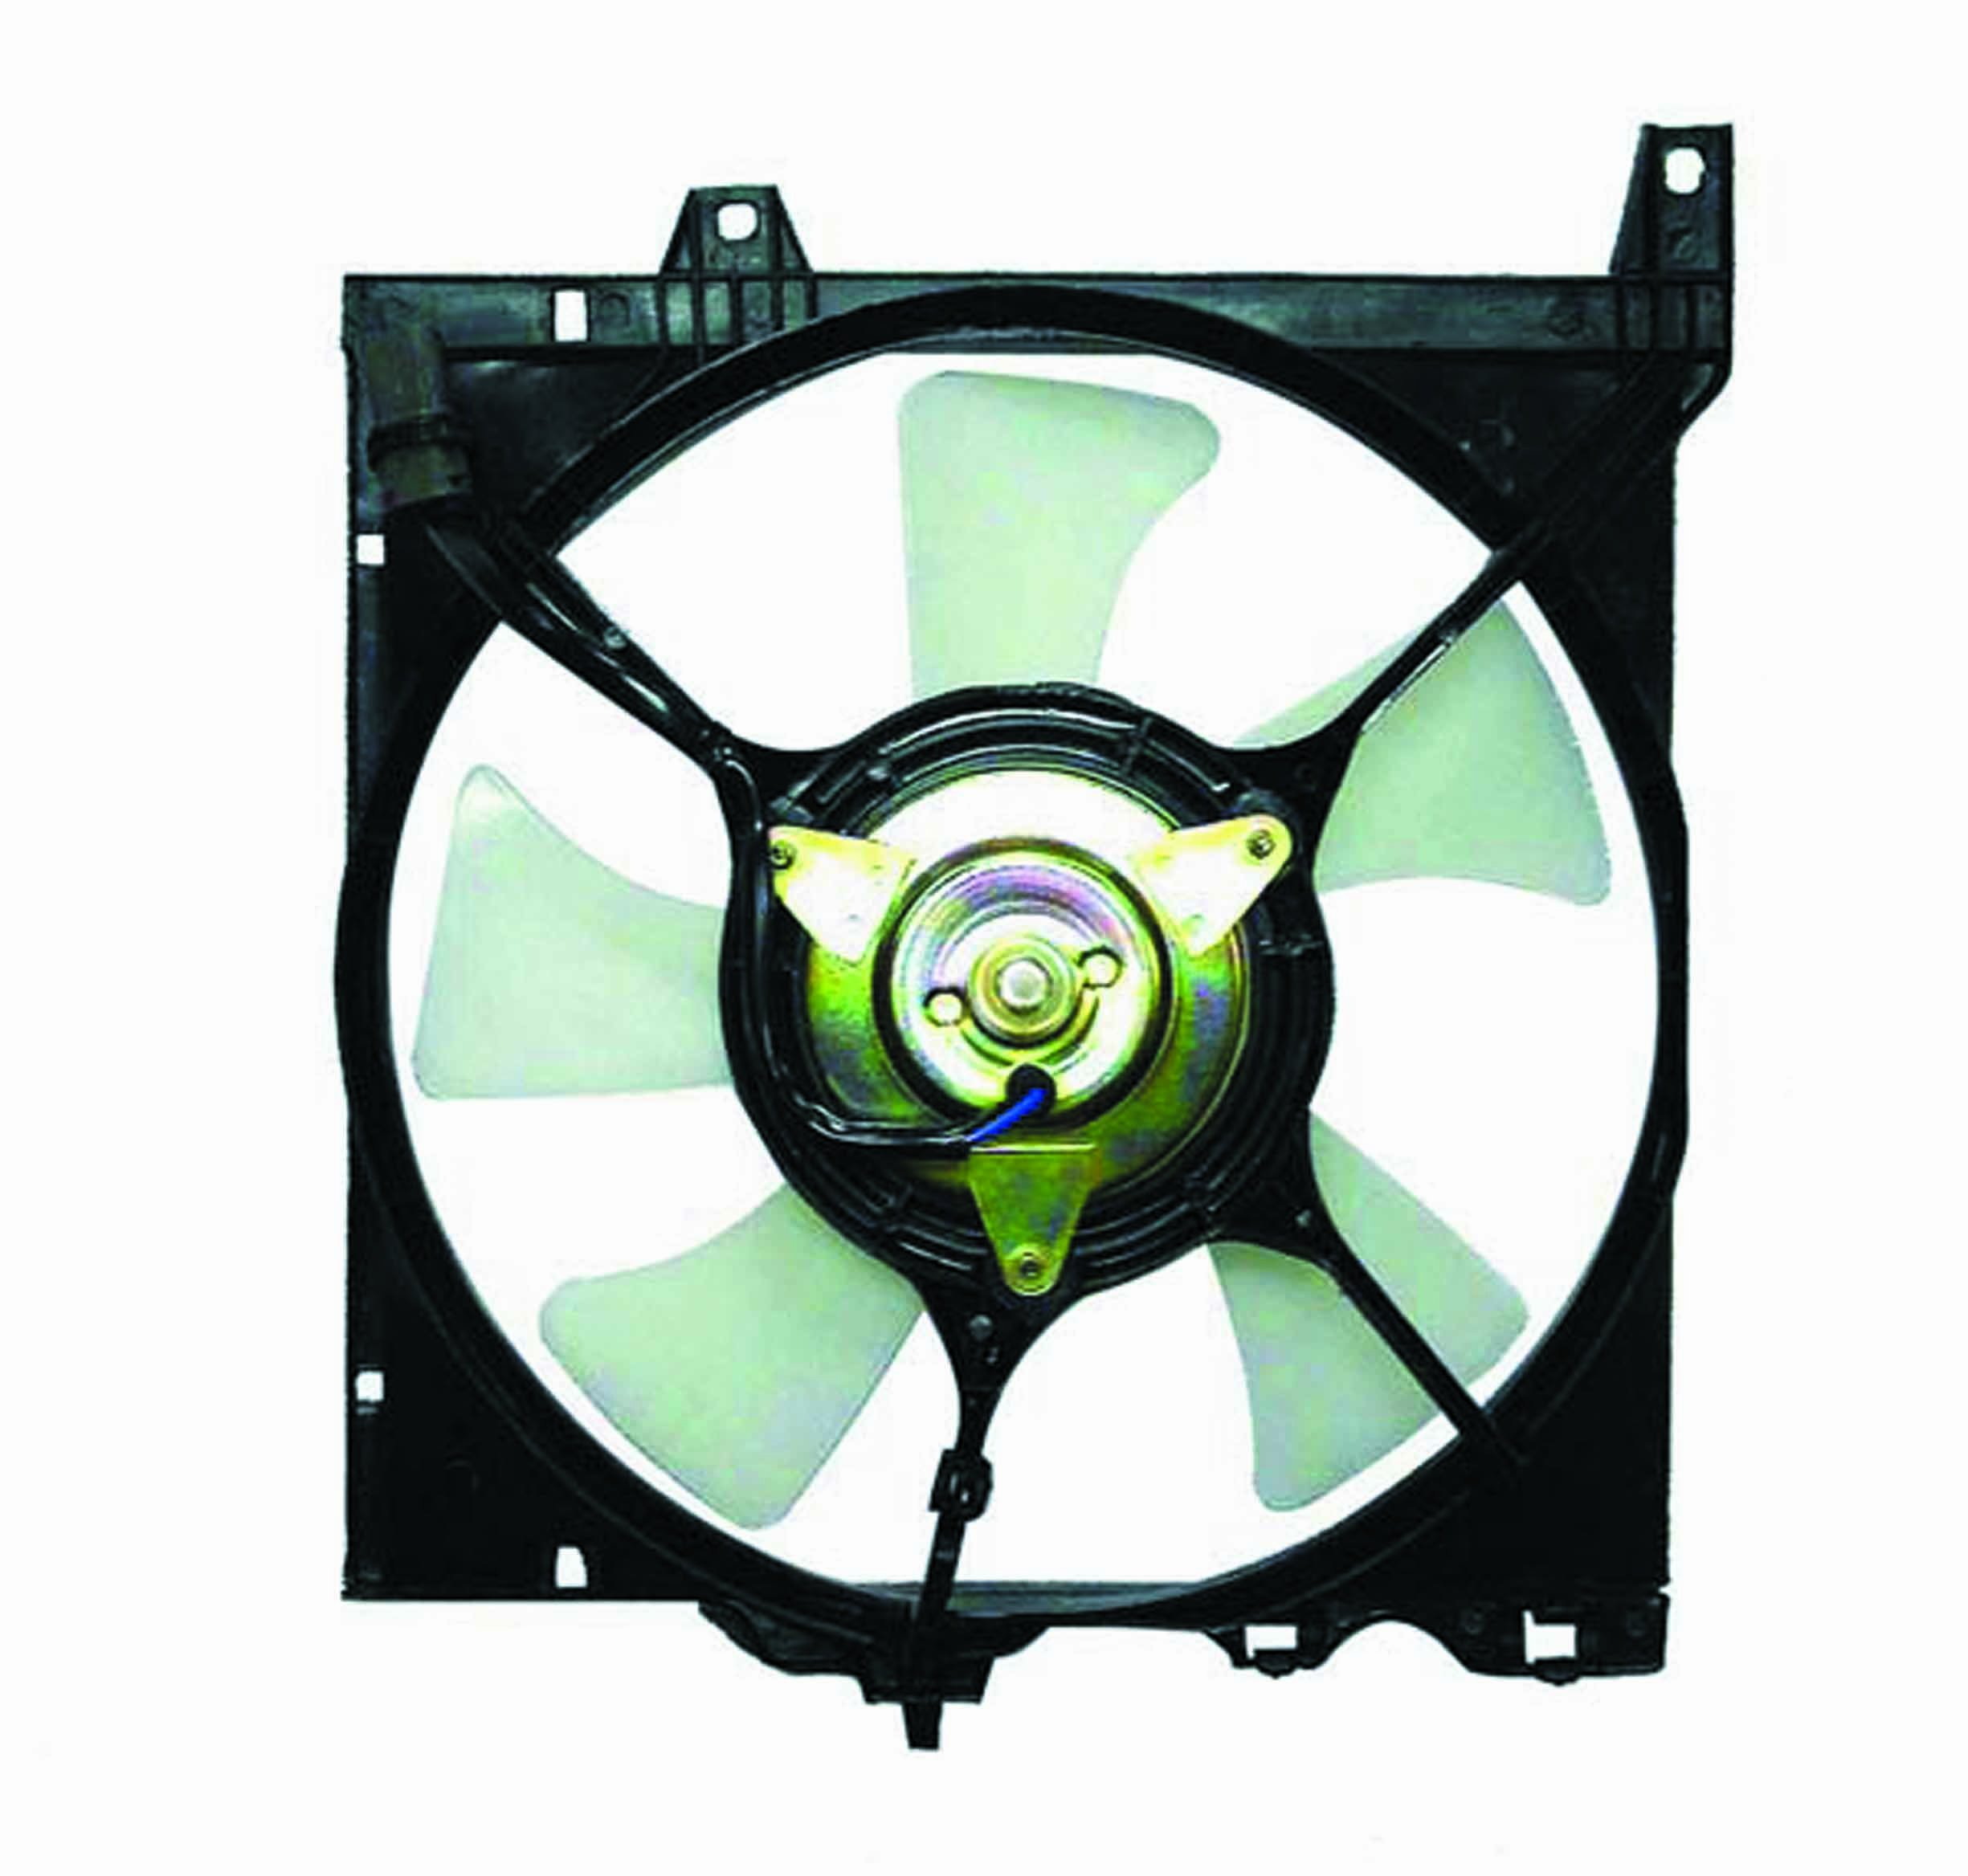 Depo 315-55029-120 Radiator Fan Assembly